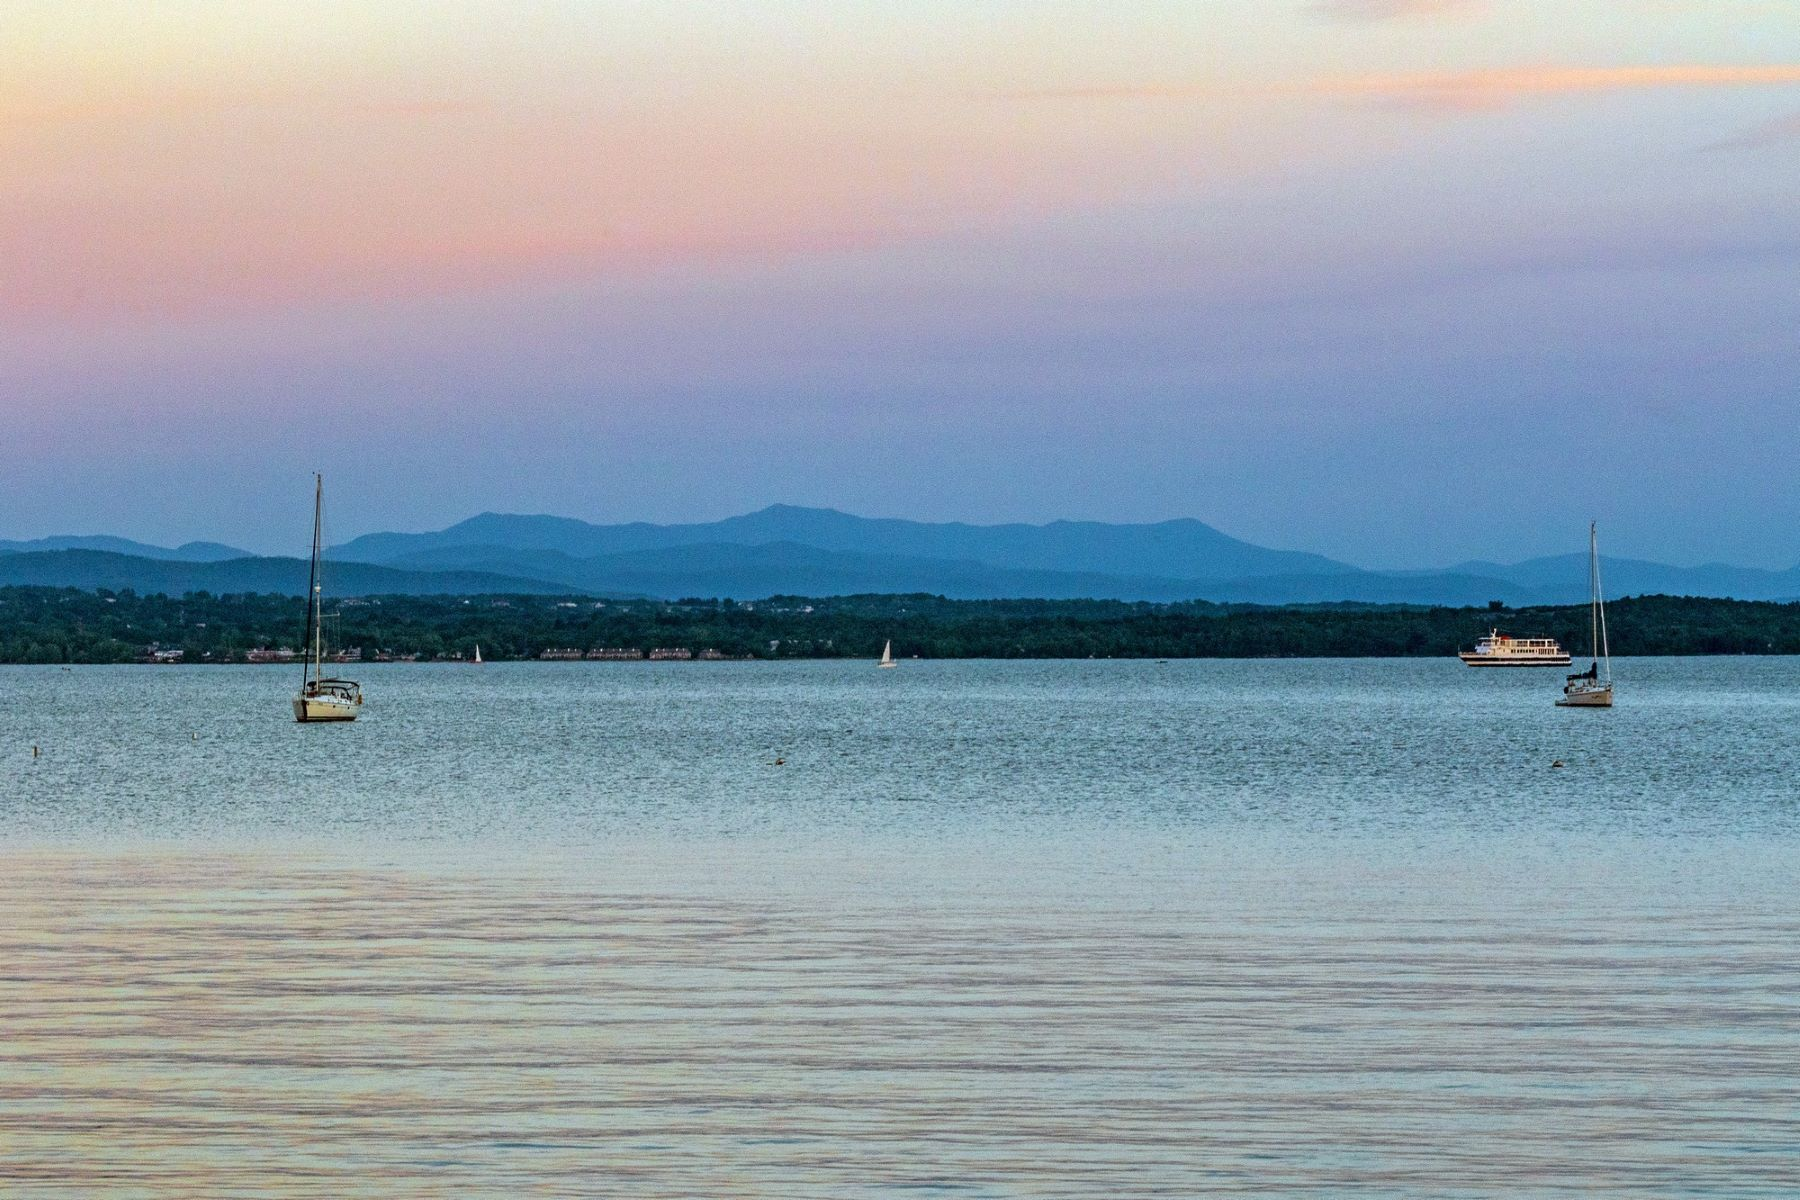 Single Family Homes for Sale at Classic Elegance on the Shore of Lake Champlain 301 Appletree Point Rd Burlington, Vermont 05408 United States